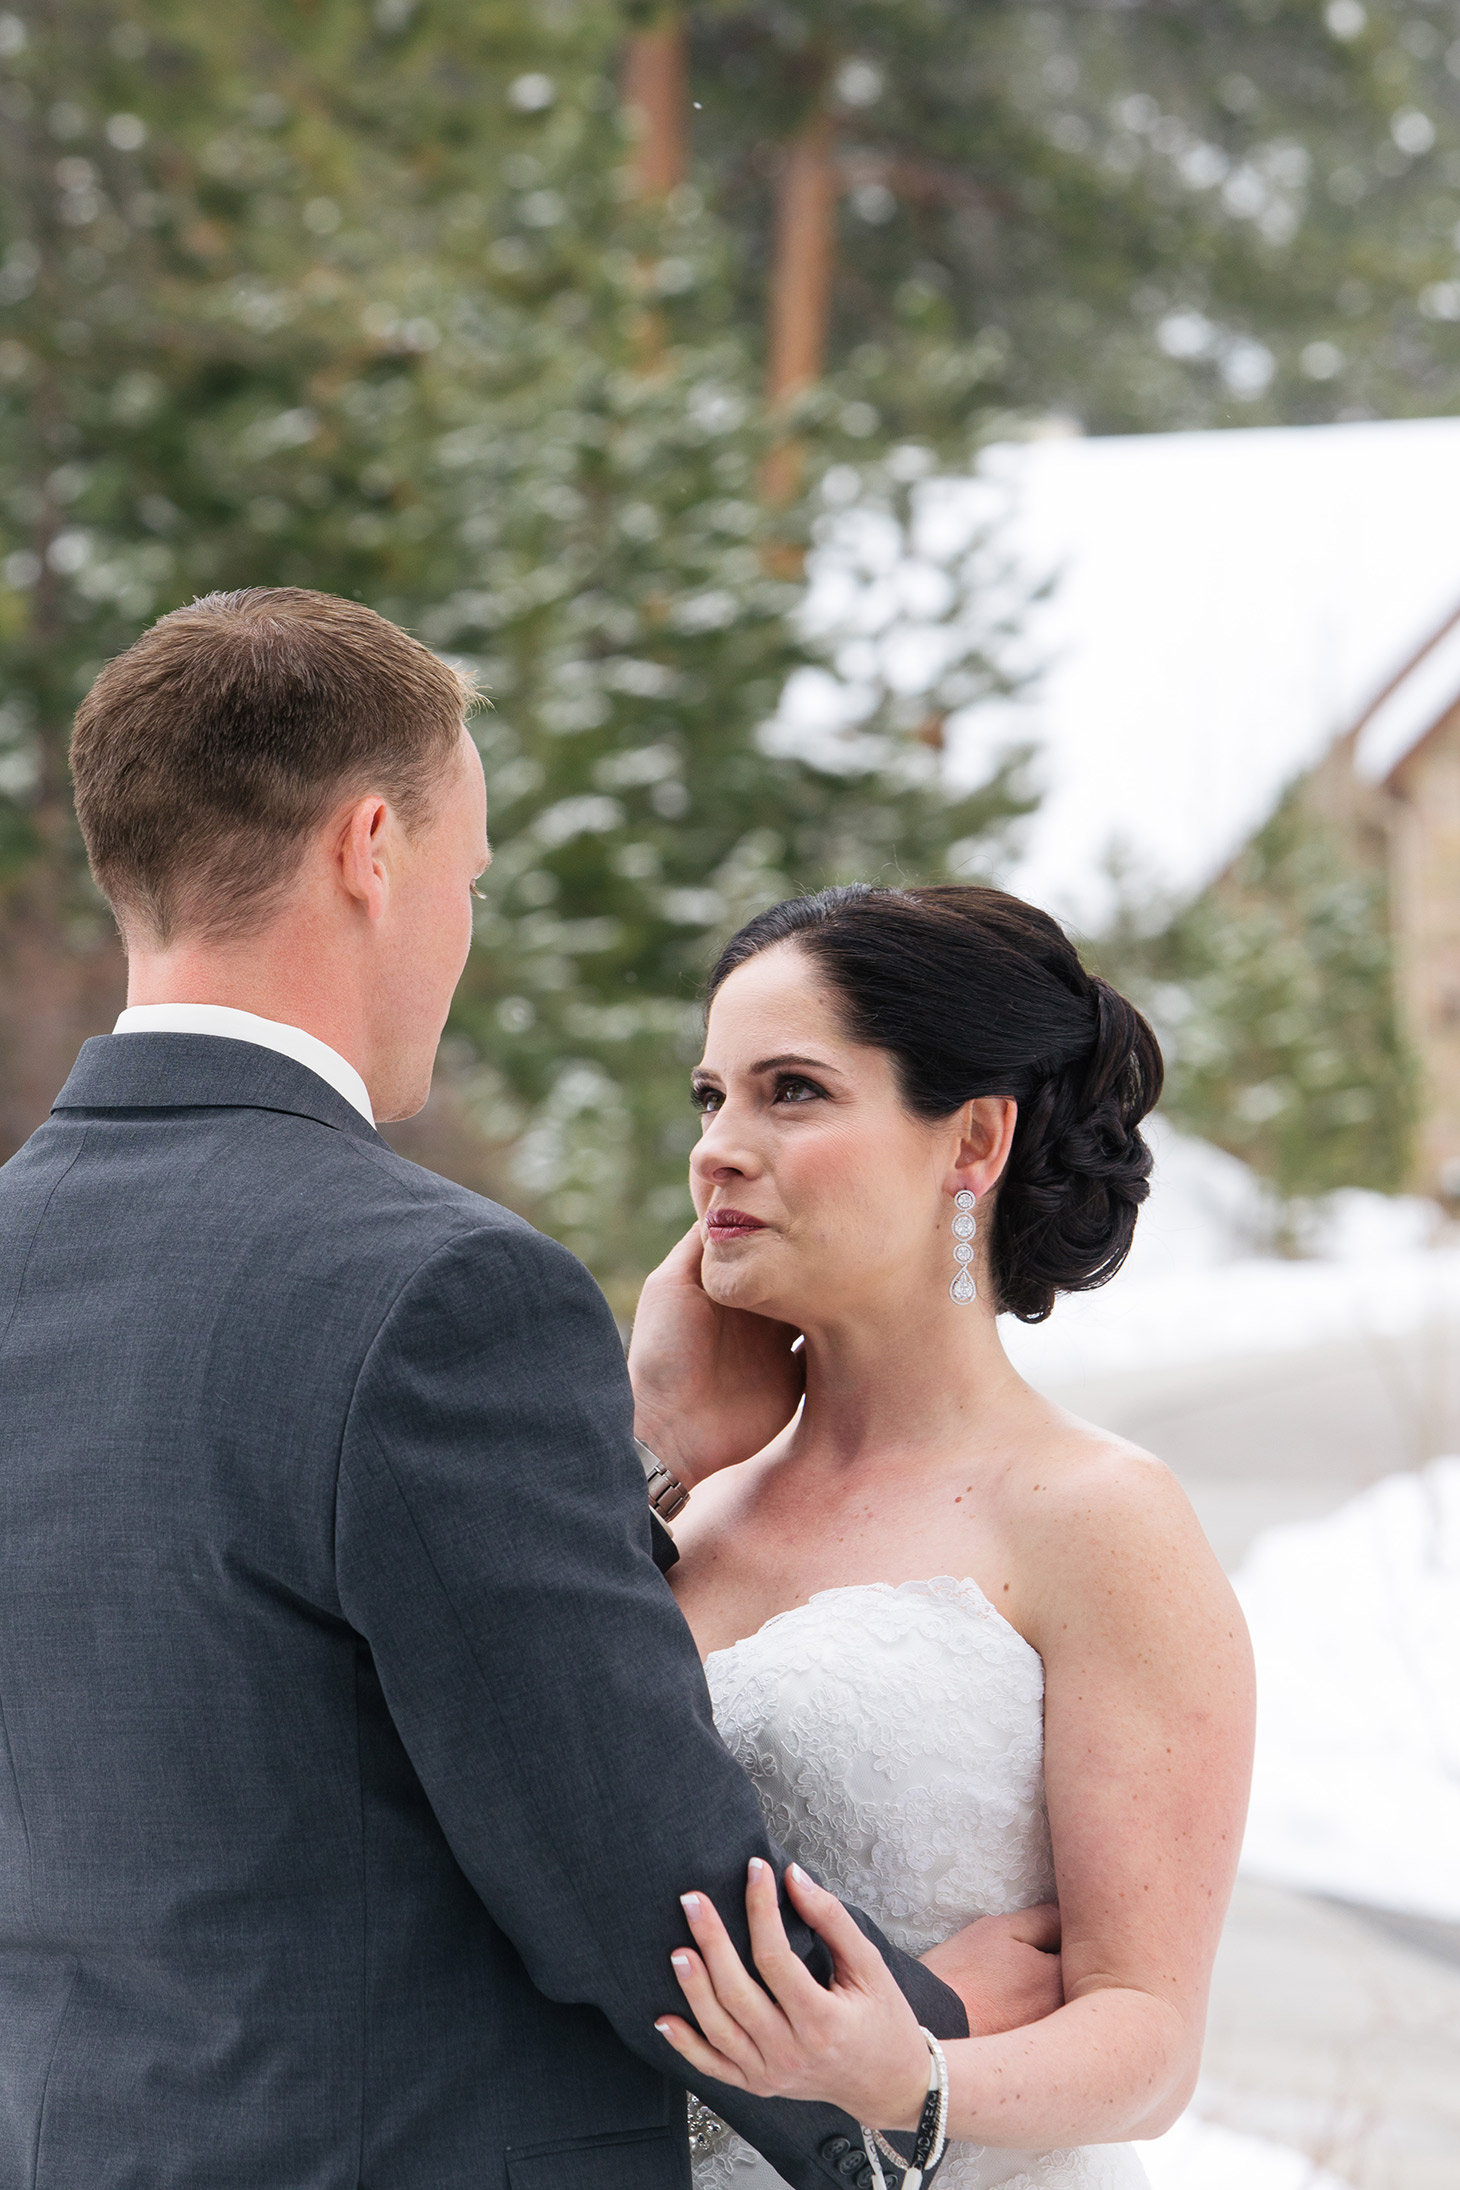 Megan-Newton-Photography-Best-Wedding-Photos-2015-056